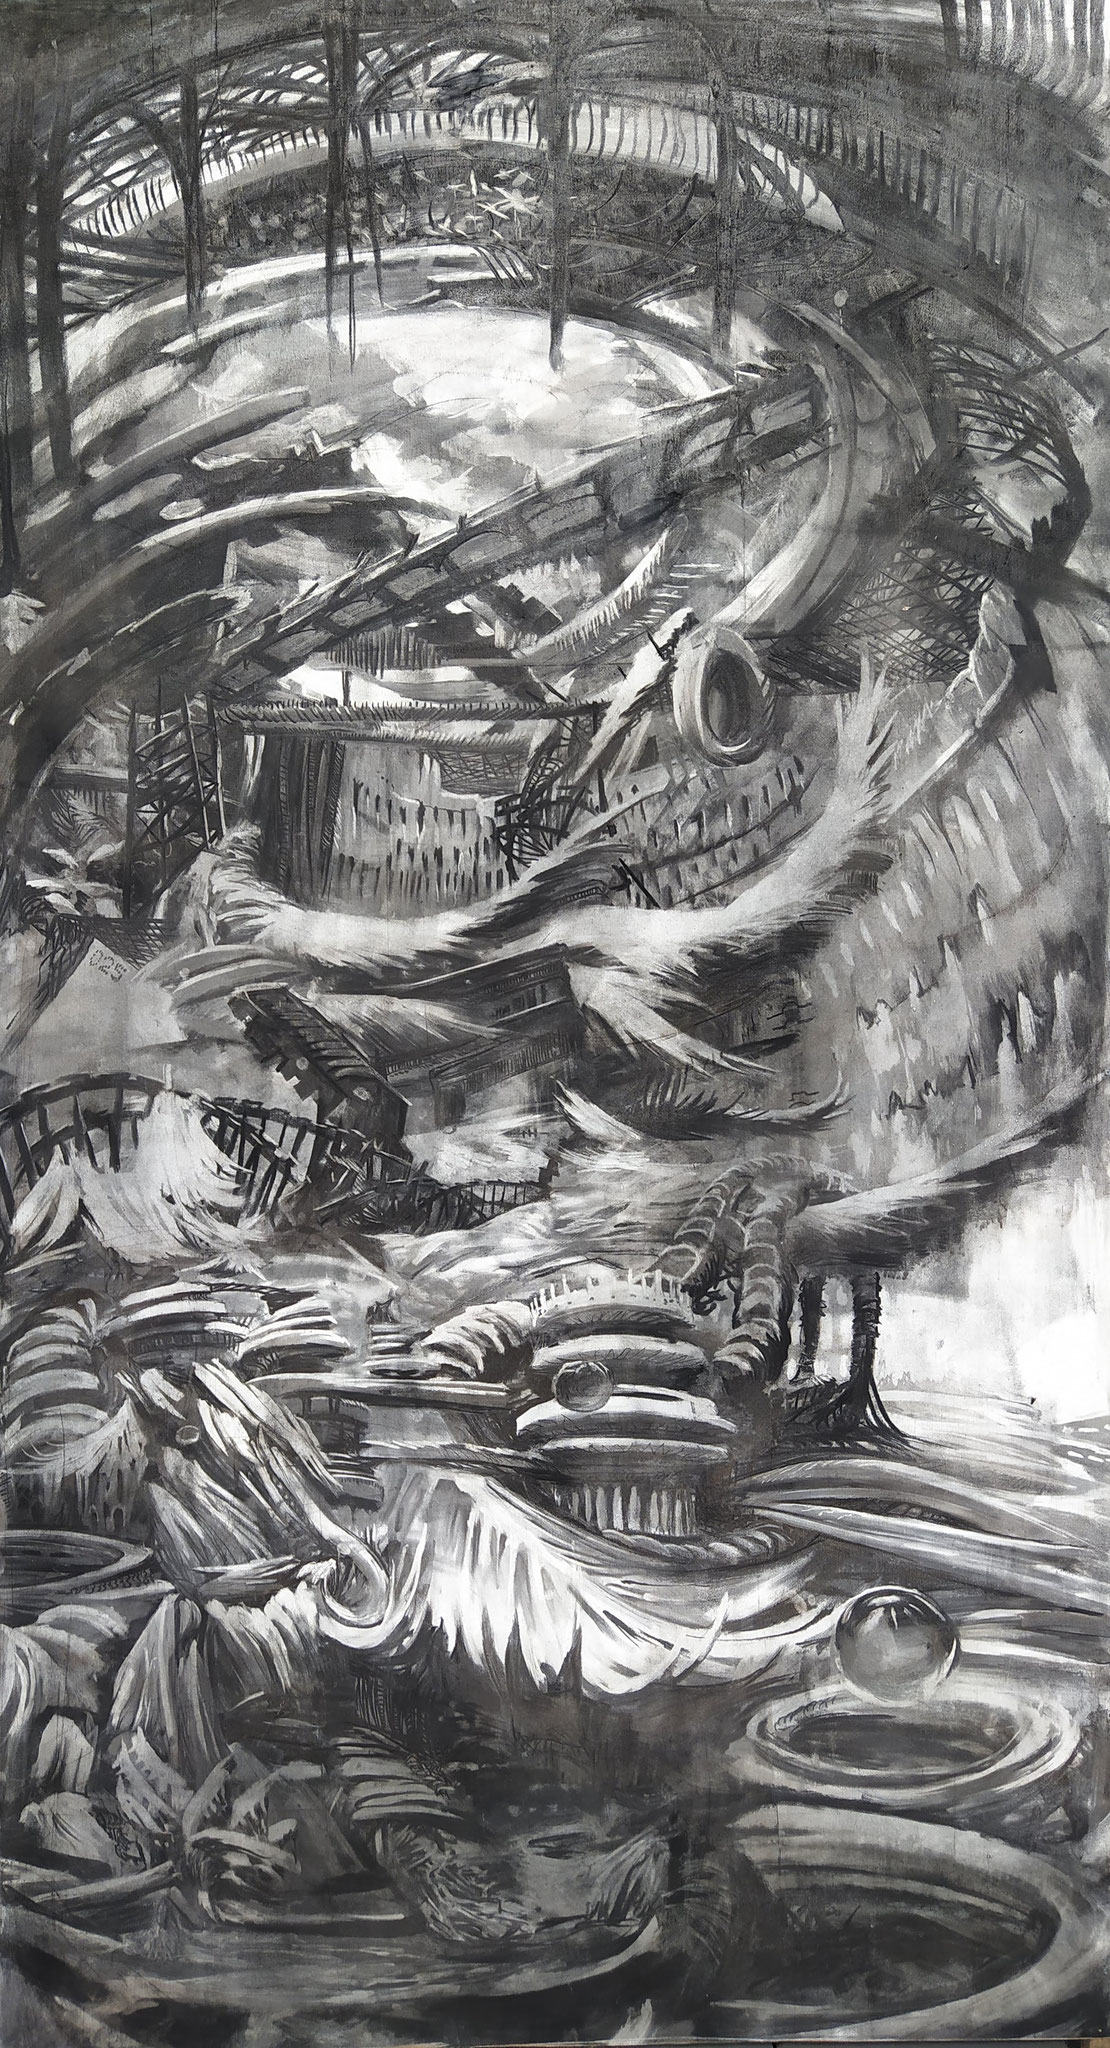 2017 - Sprucie - Charcoal and chalk on MDF board - 120 x 250 - SOLD